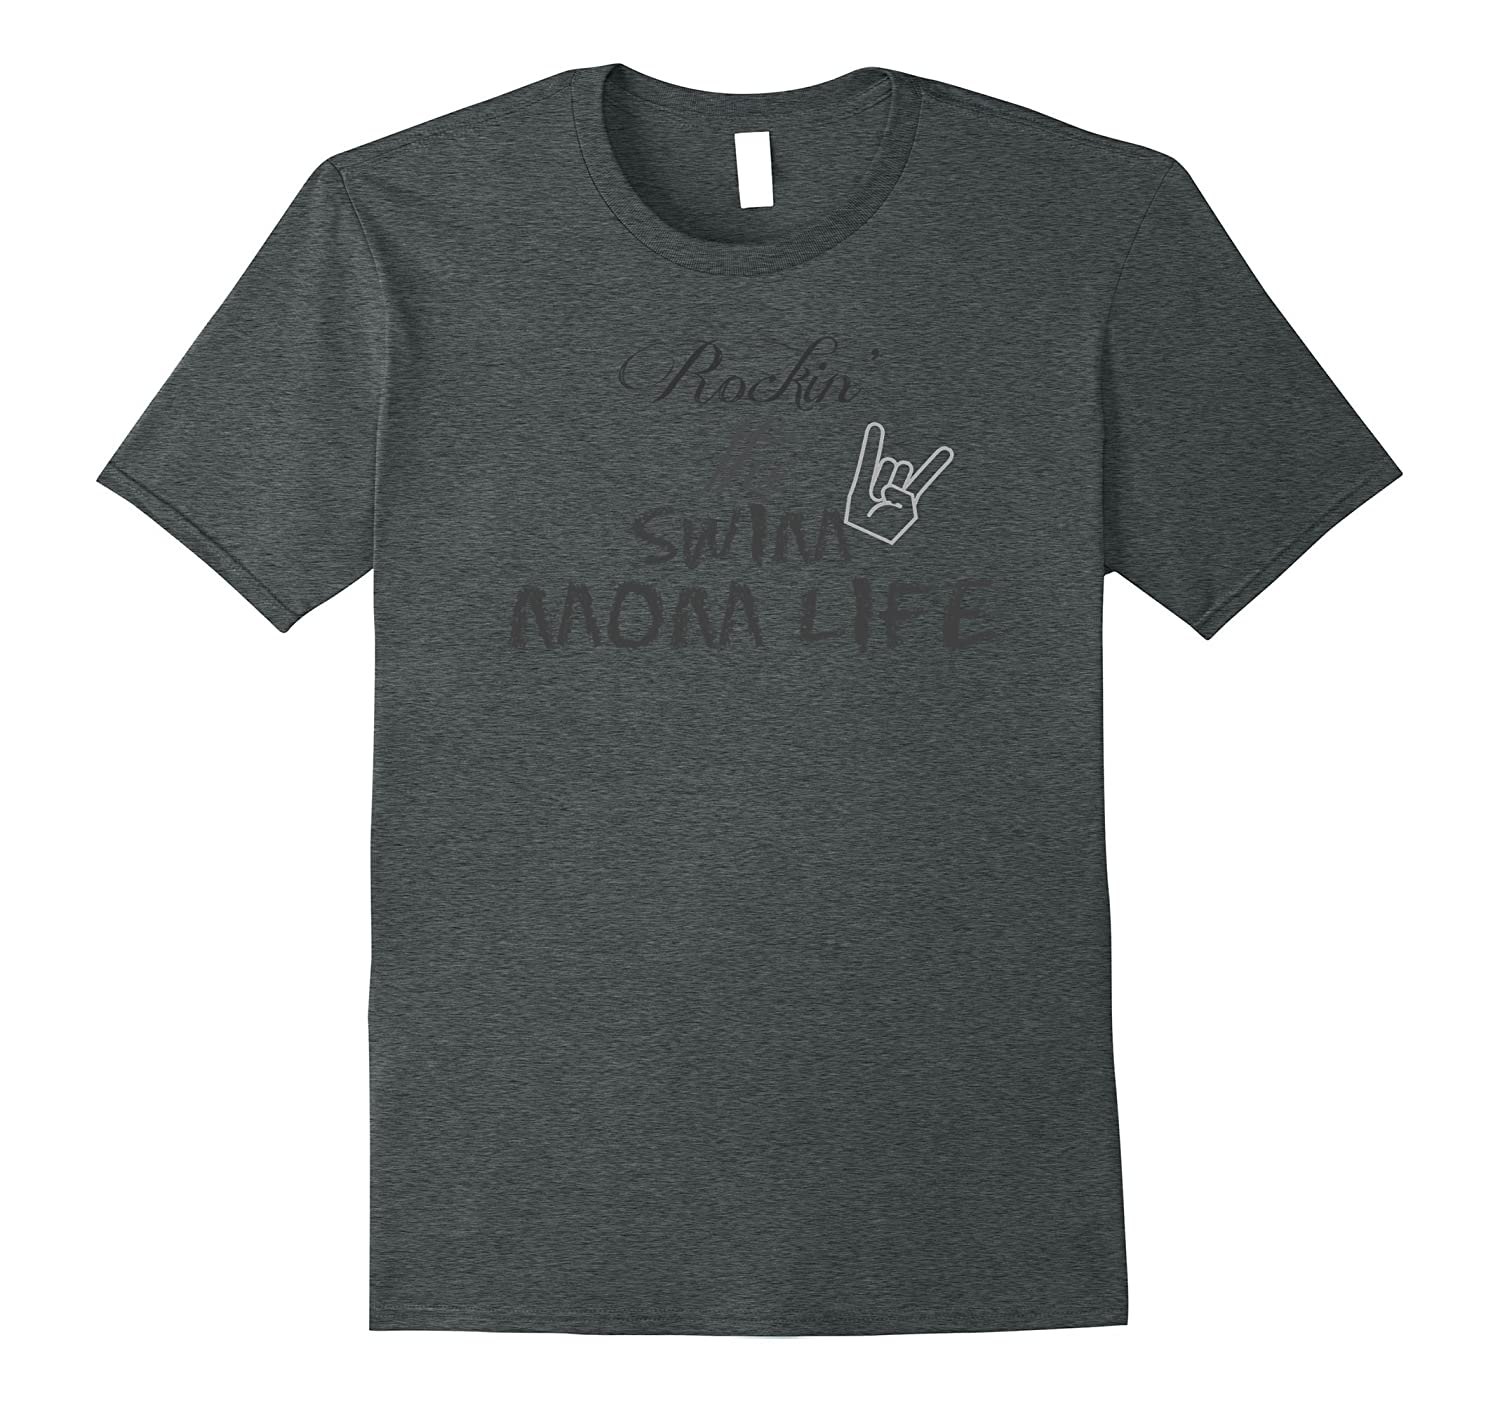 Rockin'The Swim Mom Life